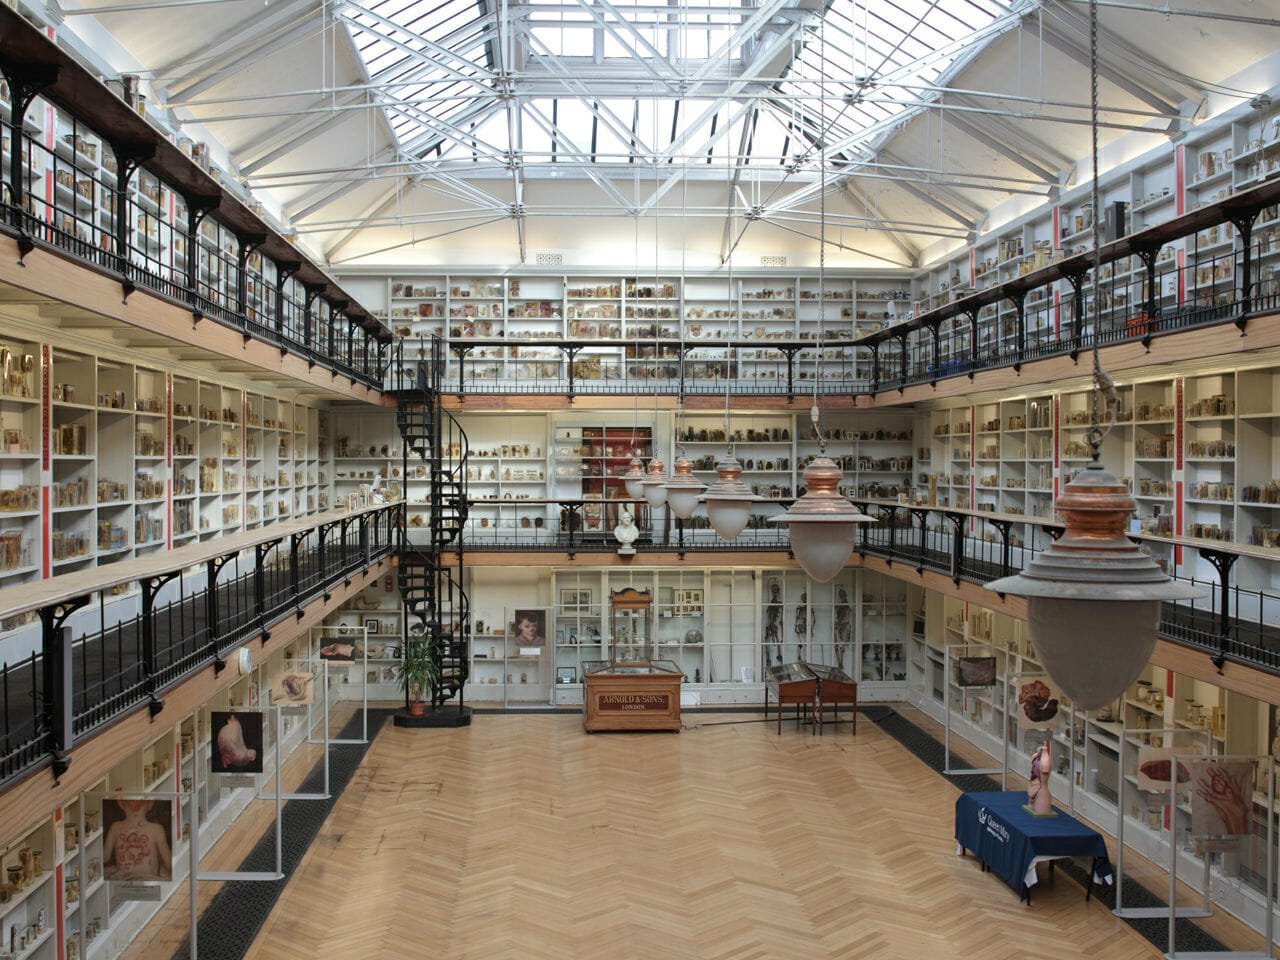 Barts Pathology Museum quirky Valentine's Day